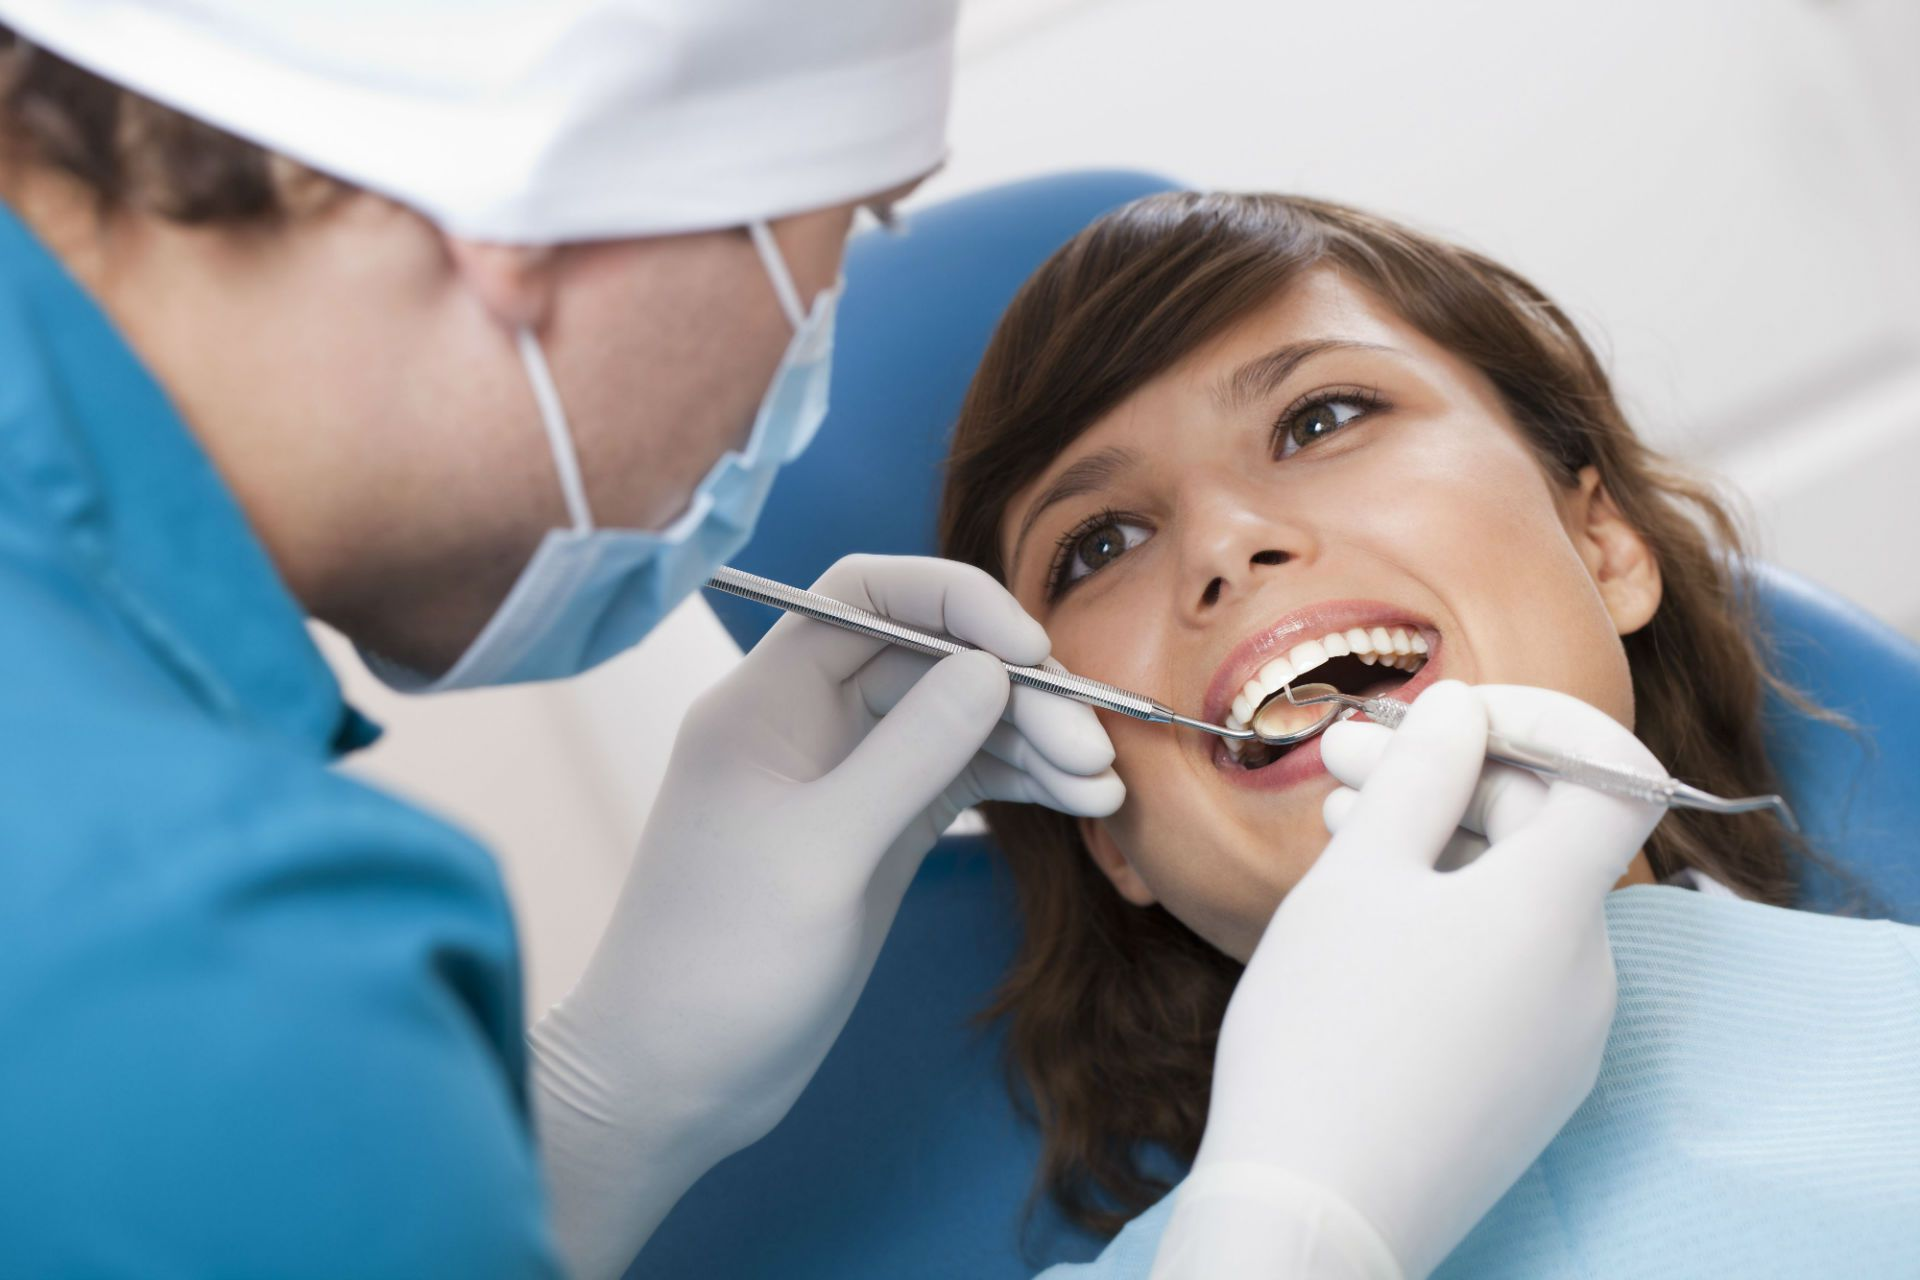 Where Can I Get Affordable Dental Insurance Programs And Coverage?